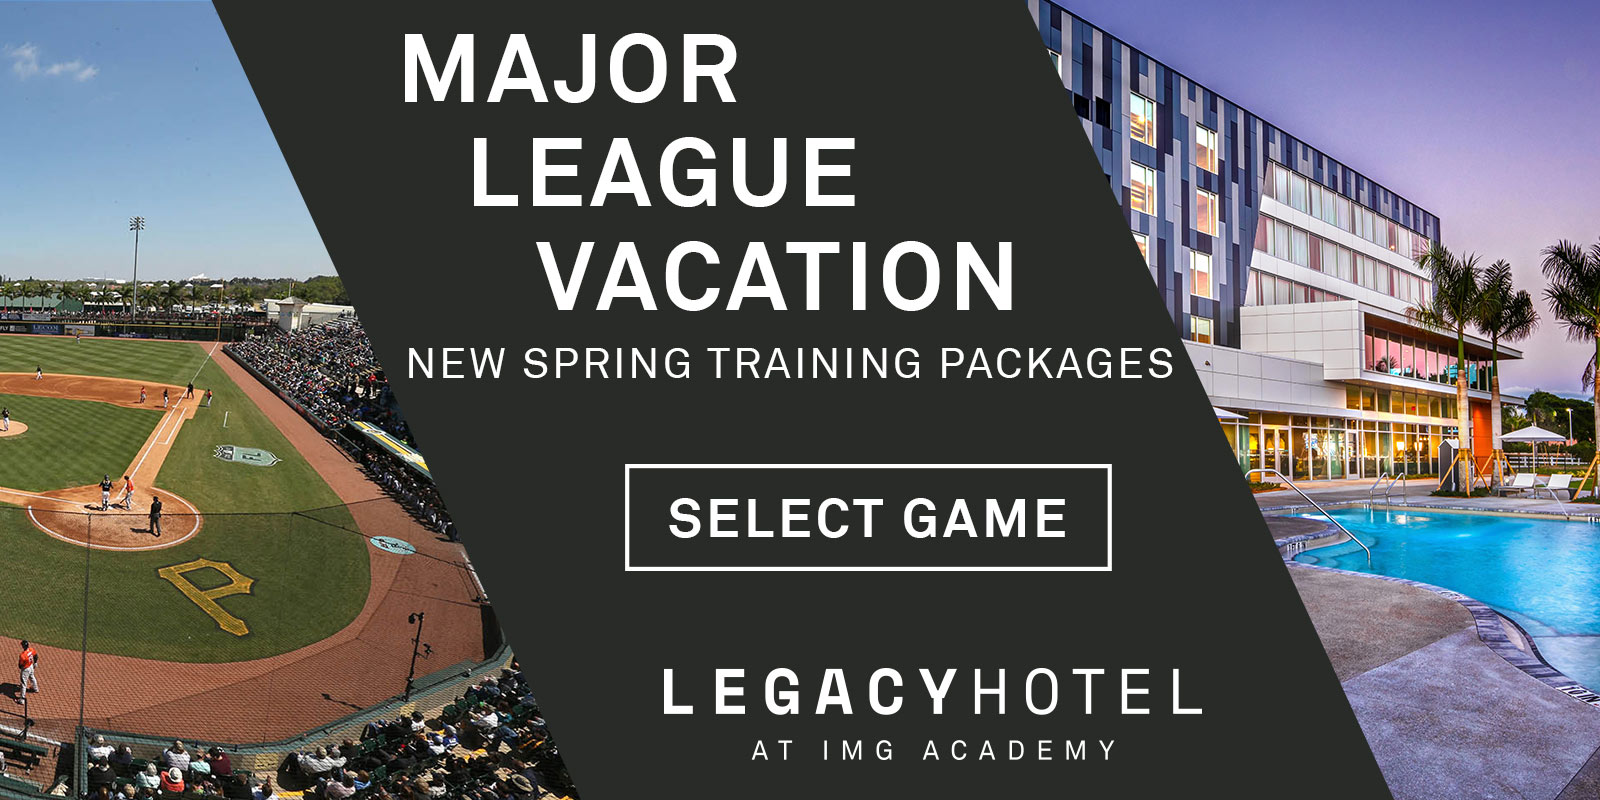 Book your Major League Vacation now